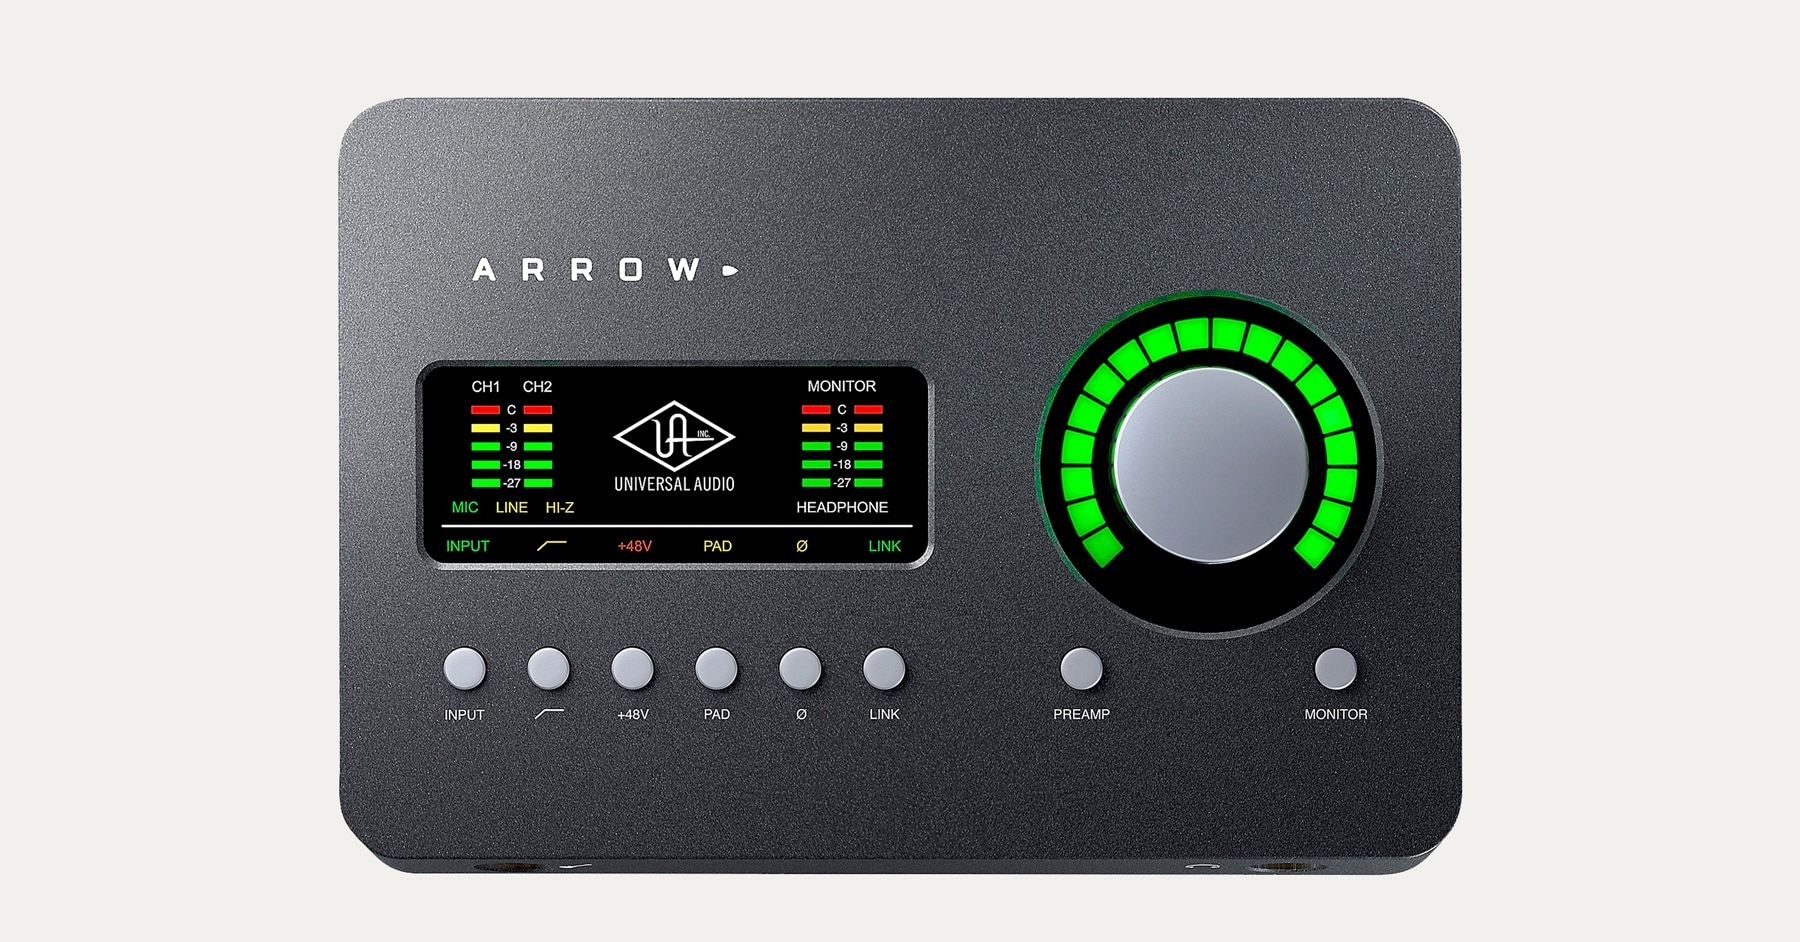 Universal Audio Arrow Audio Interface Announced